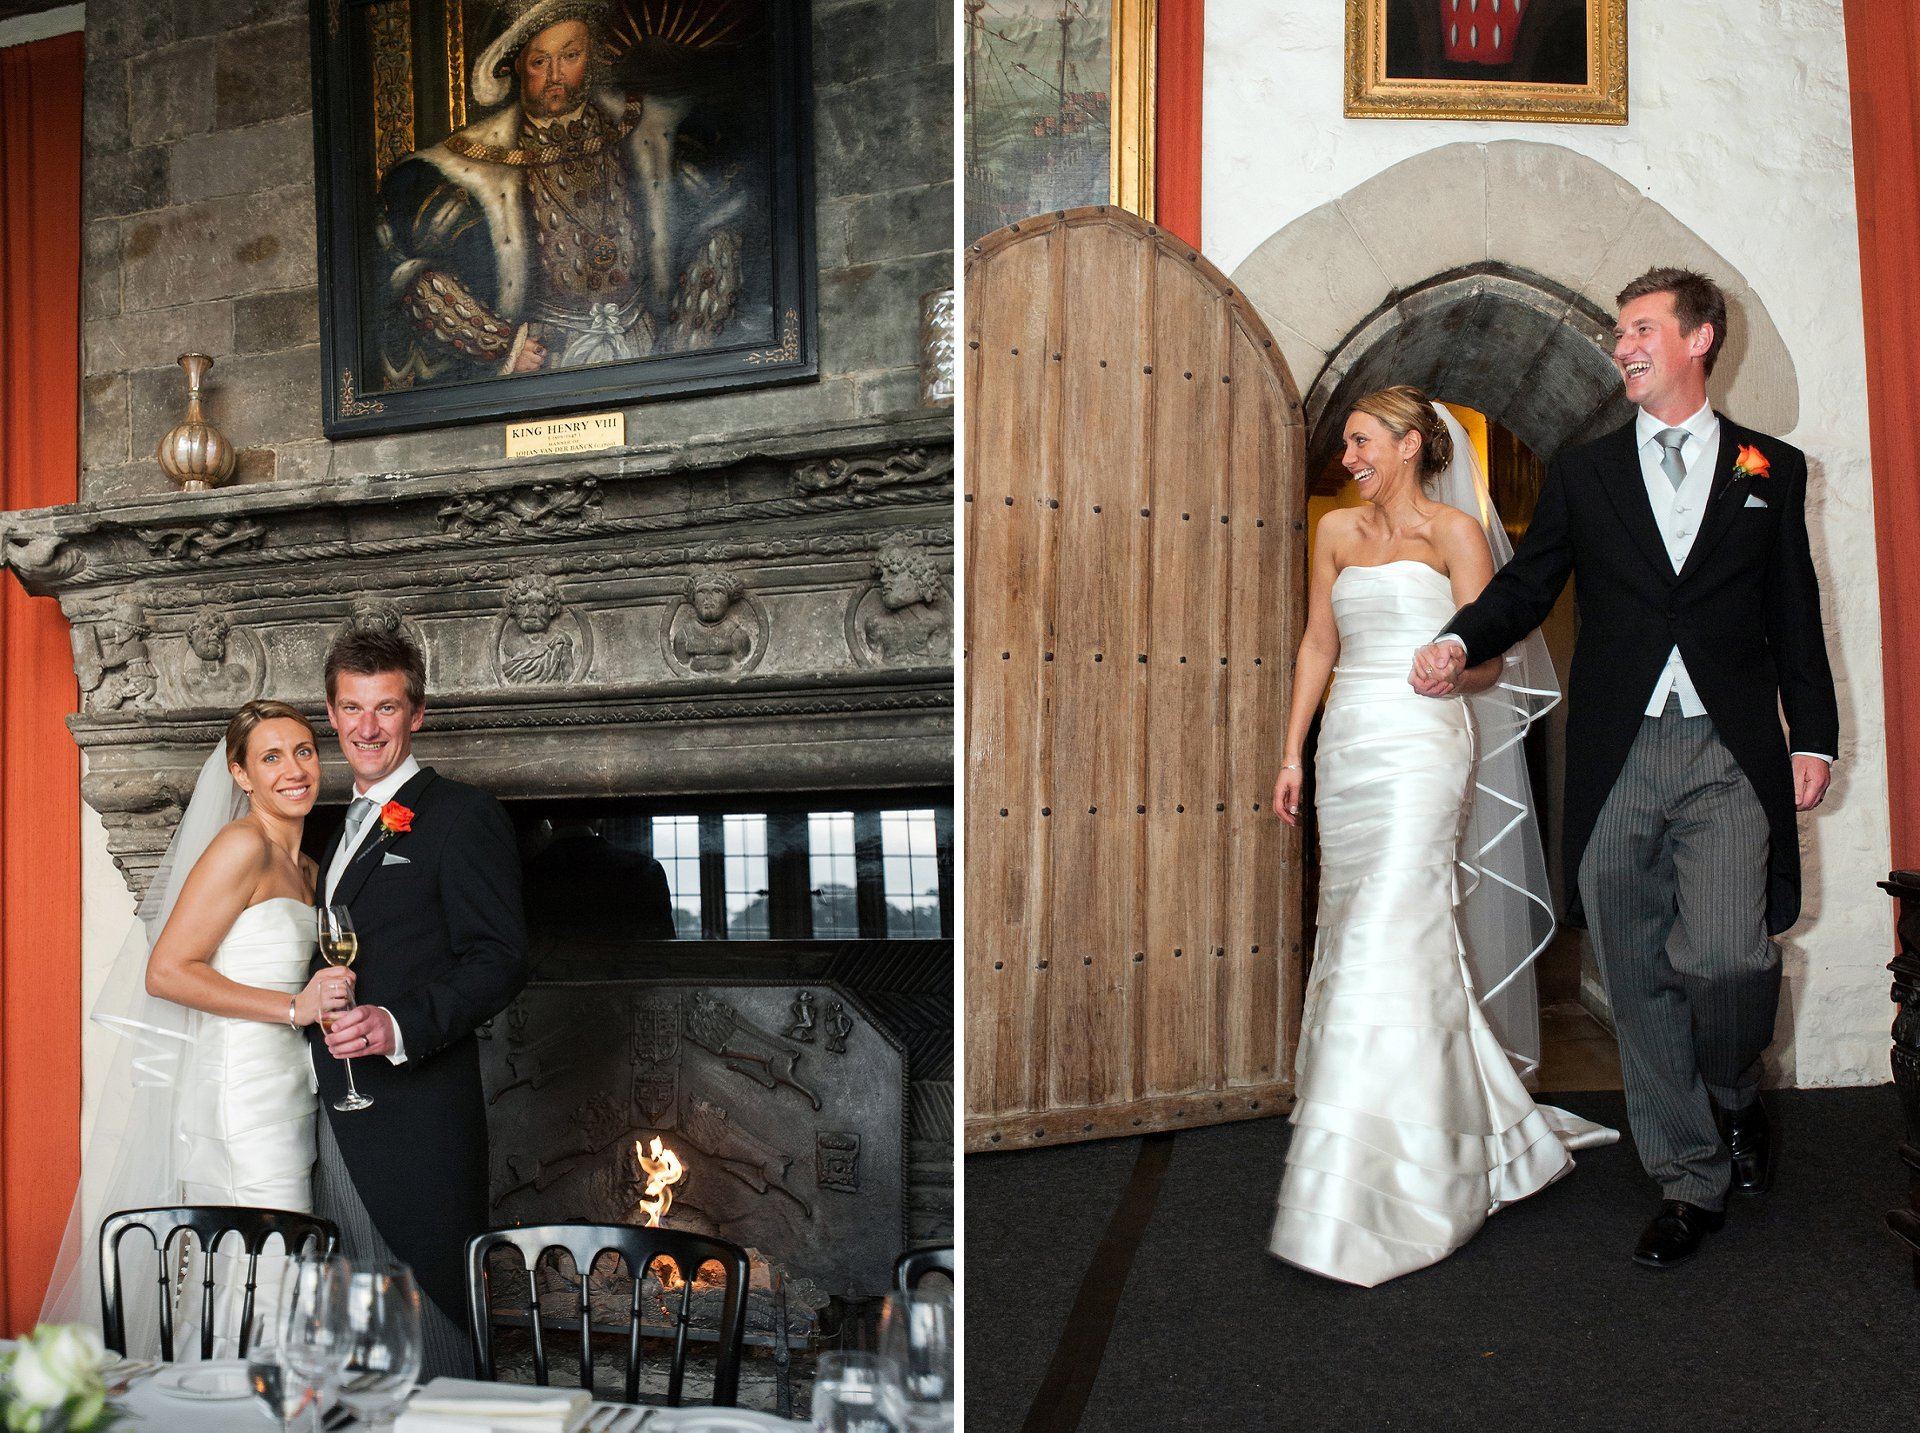 The bride and groom in the Henry VIII Banqueting Hall for their wedding breakfast